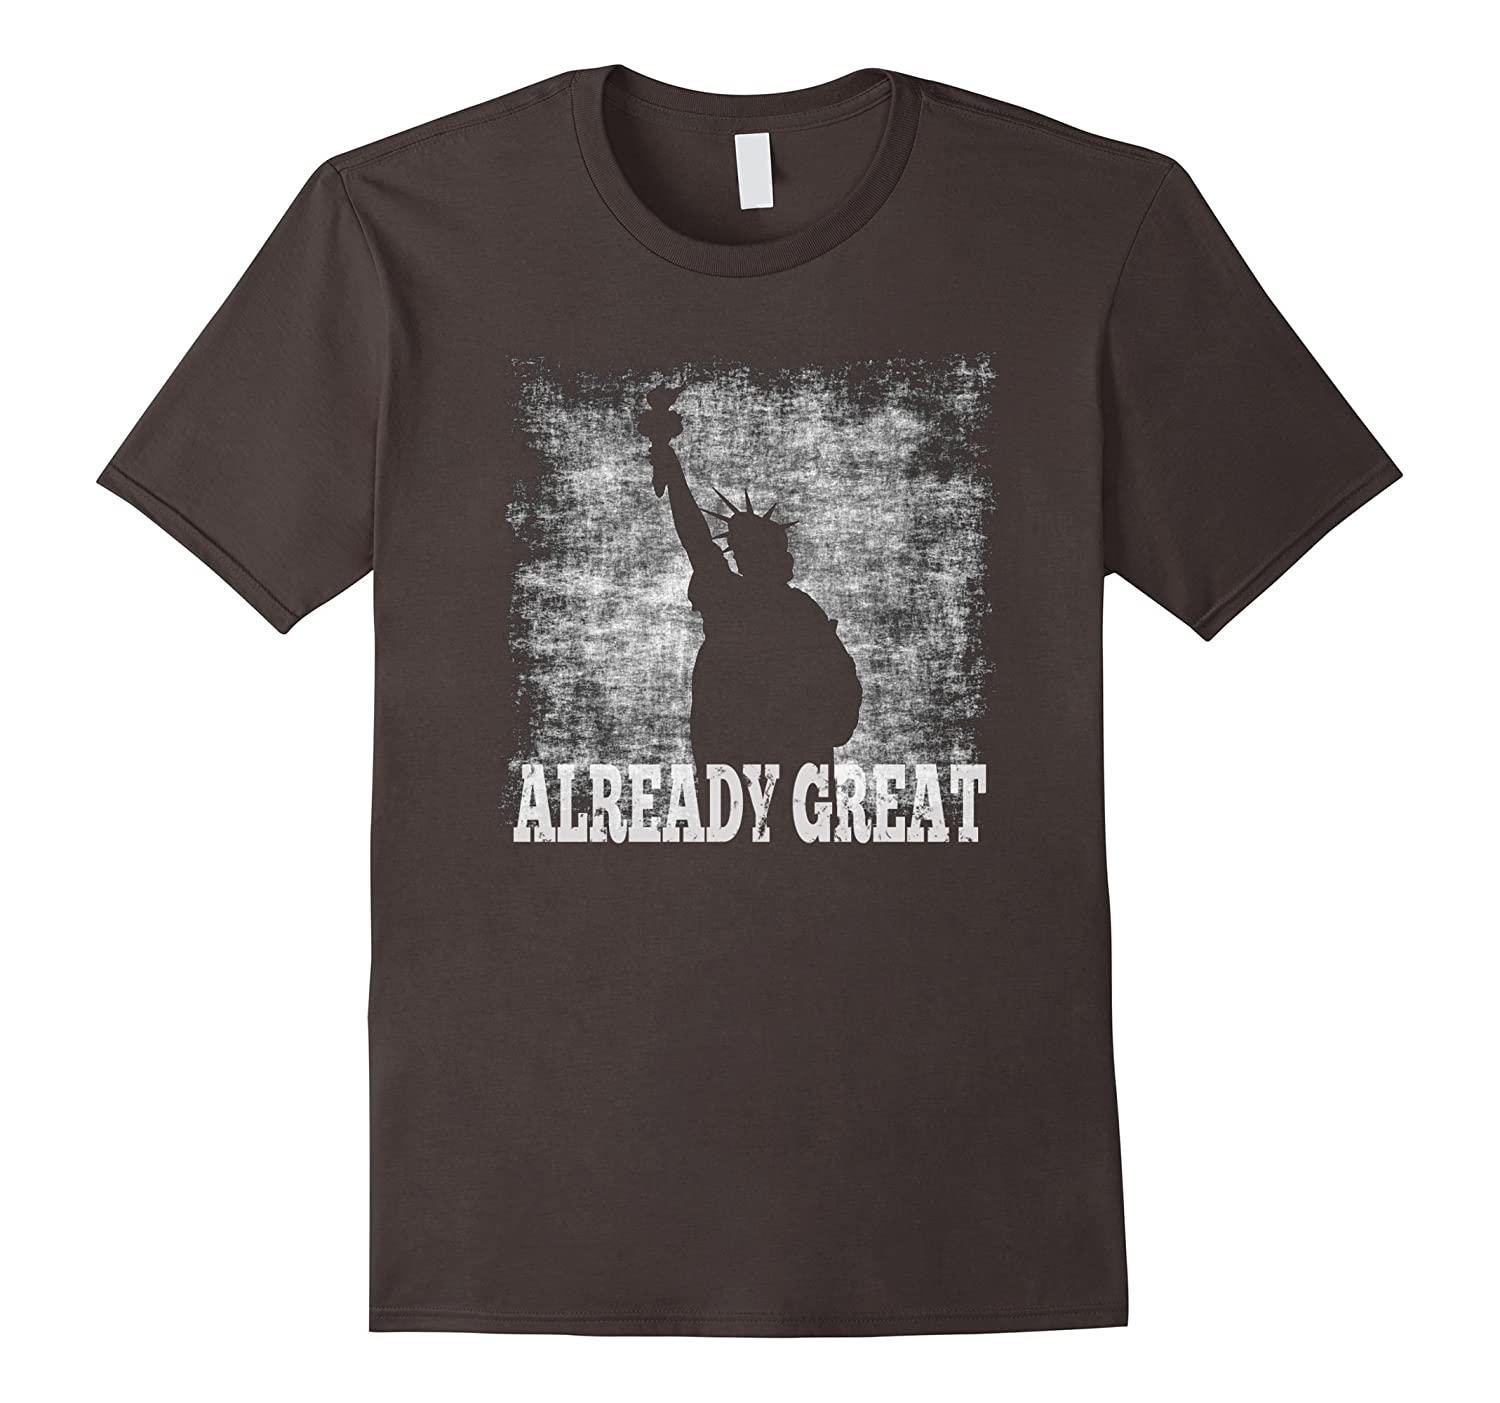 America Is Already Great T-Shirt - Patriotic American Tee-Art